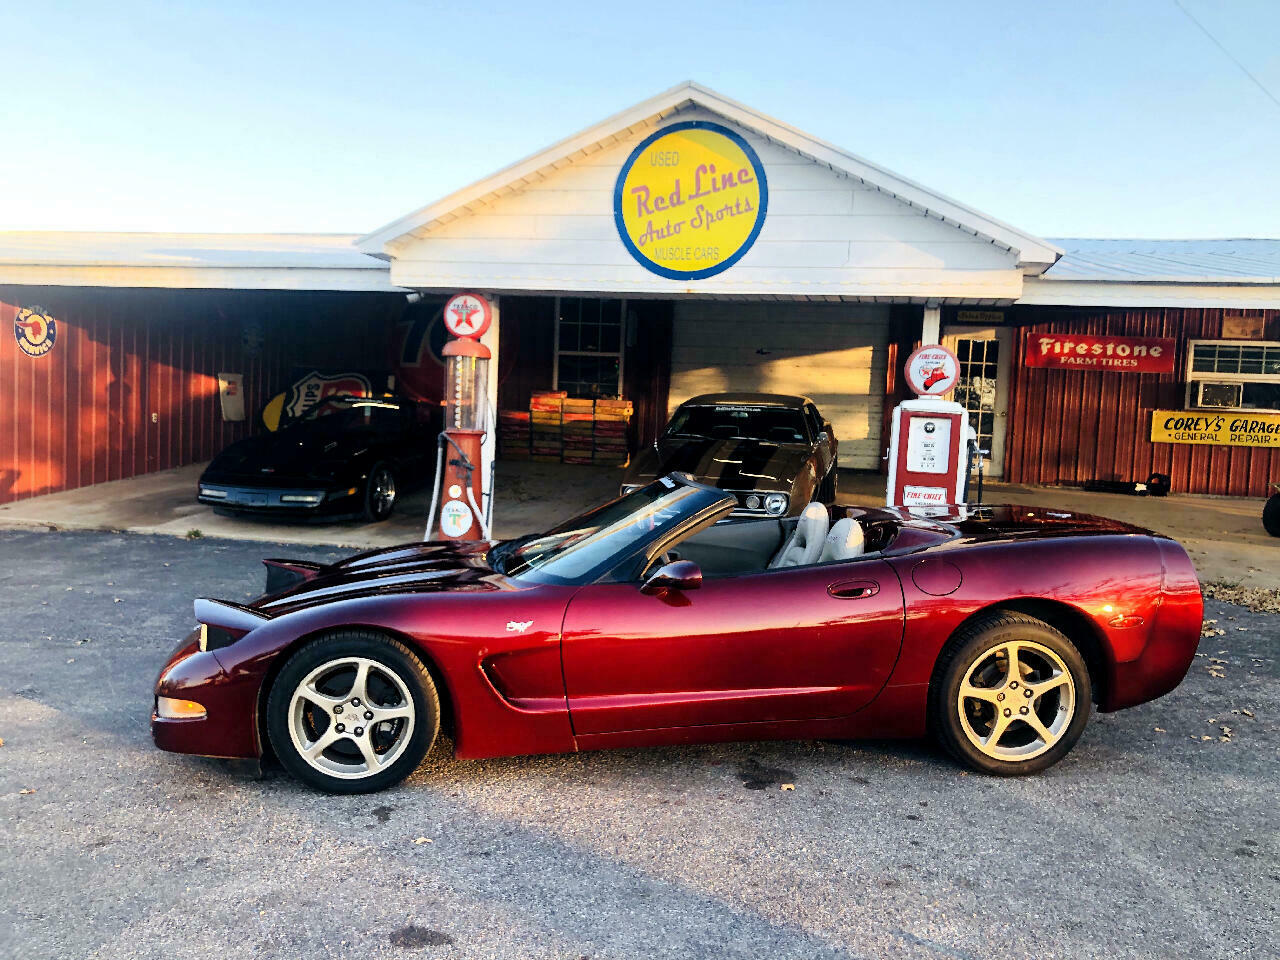 2003 Burgundy Chevrolet Corvette Convertible  | C5 Corvette Photo 3